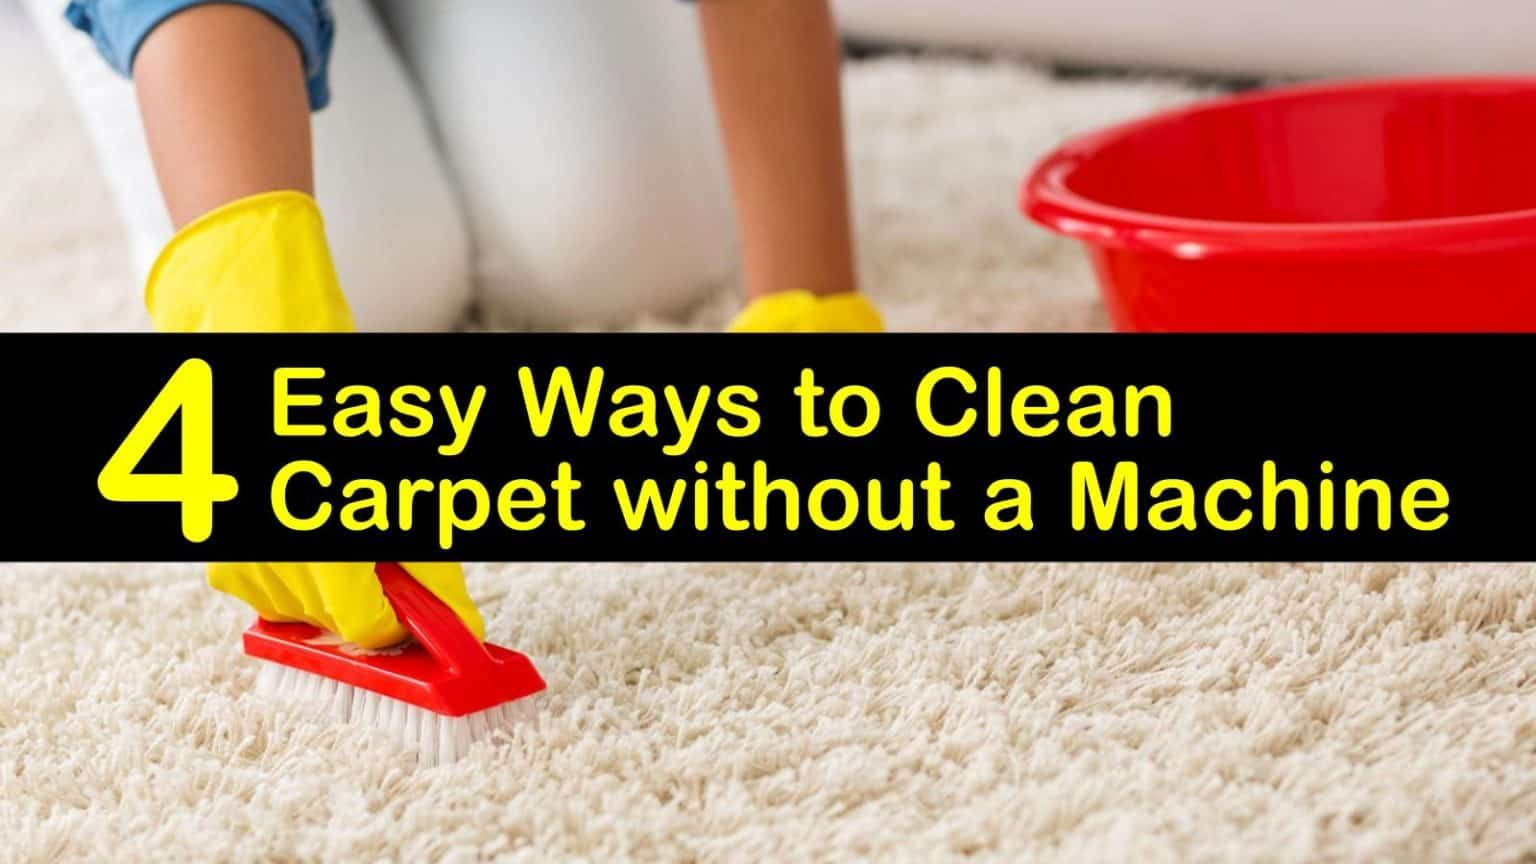 4 Easy Ways to Clean Carpet without a Machine in 2020